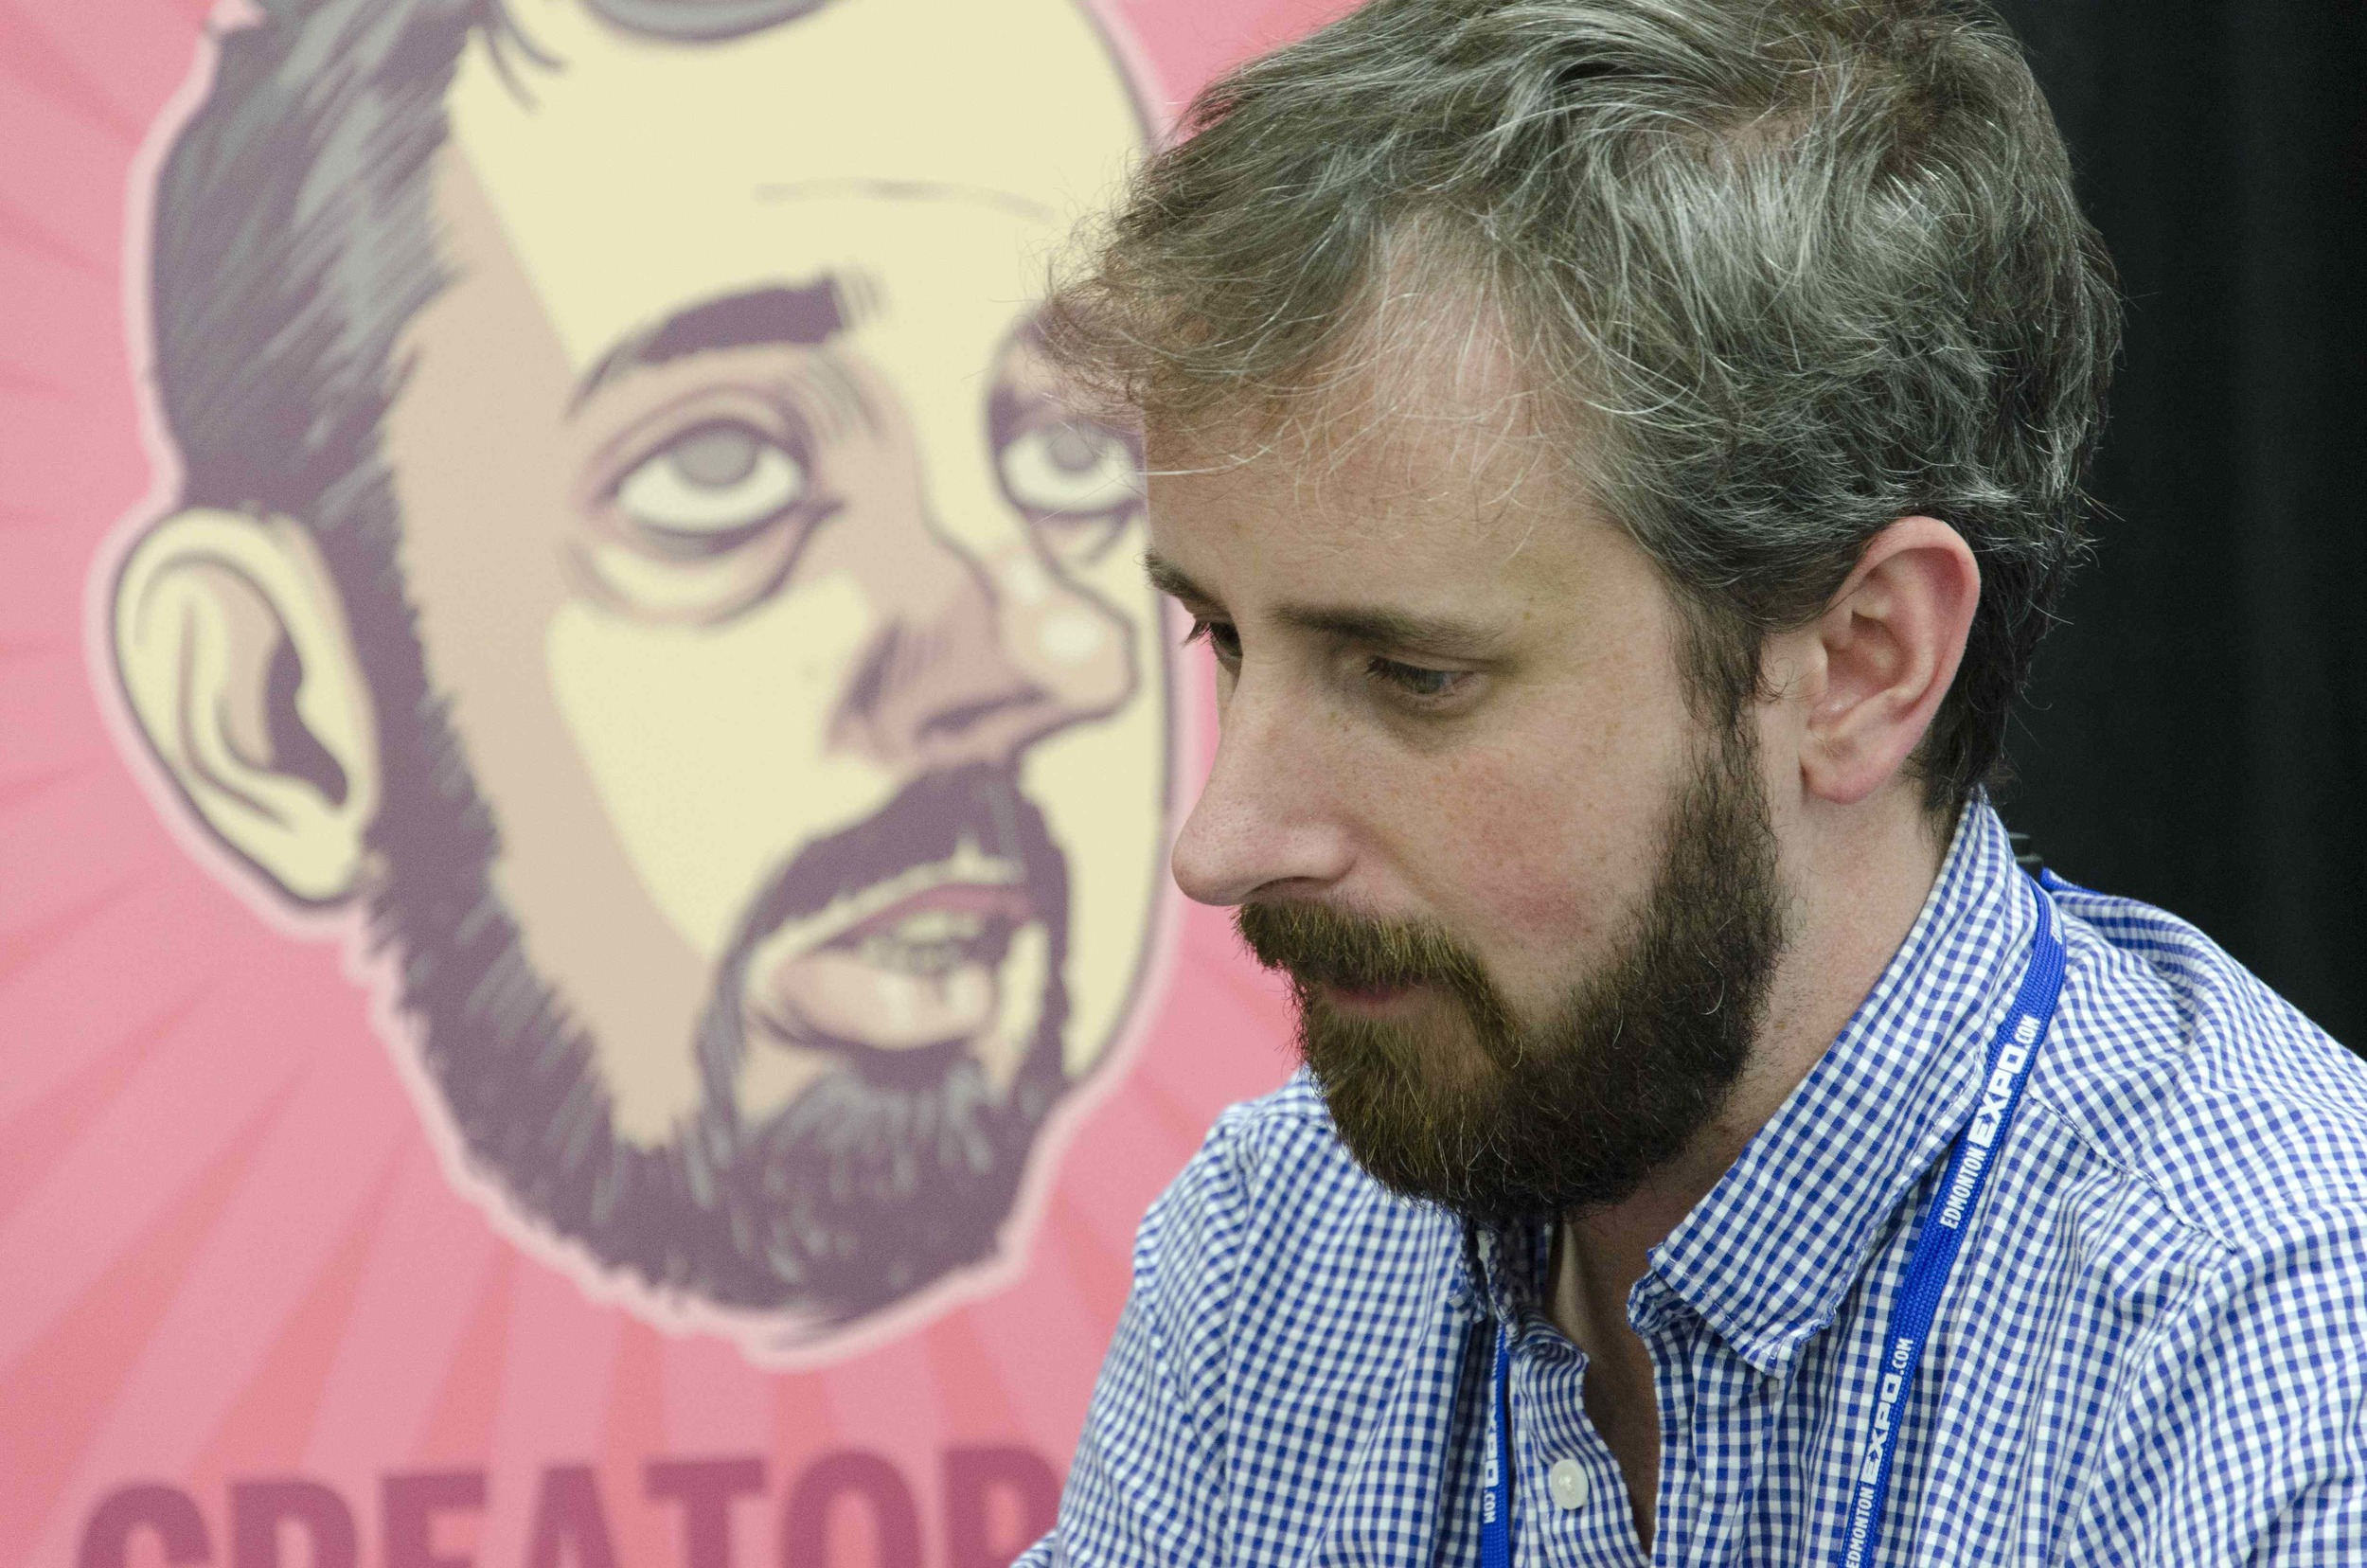 Sex Criminals and soon-to-be Howard the Duck artist,Chip Zdarsky, at the 2014 Edmonton Expo.